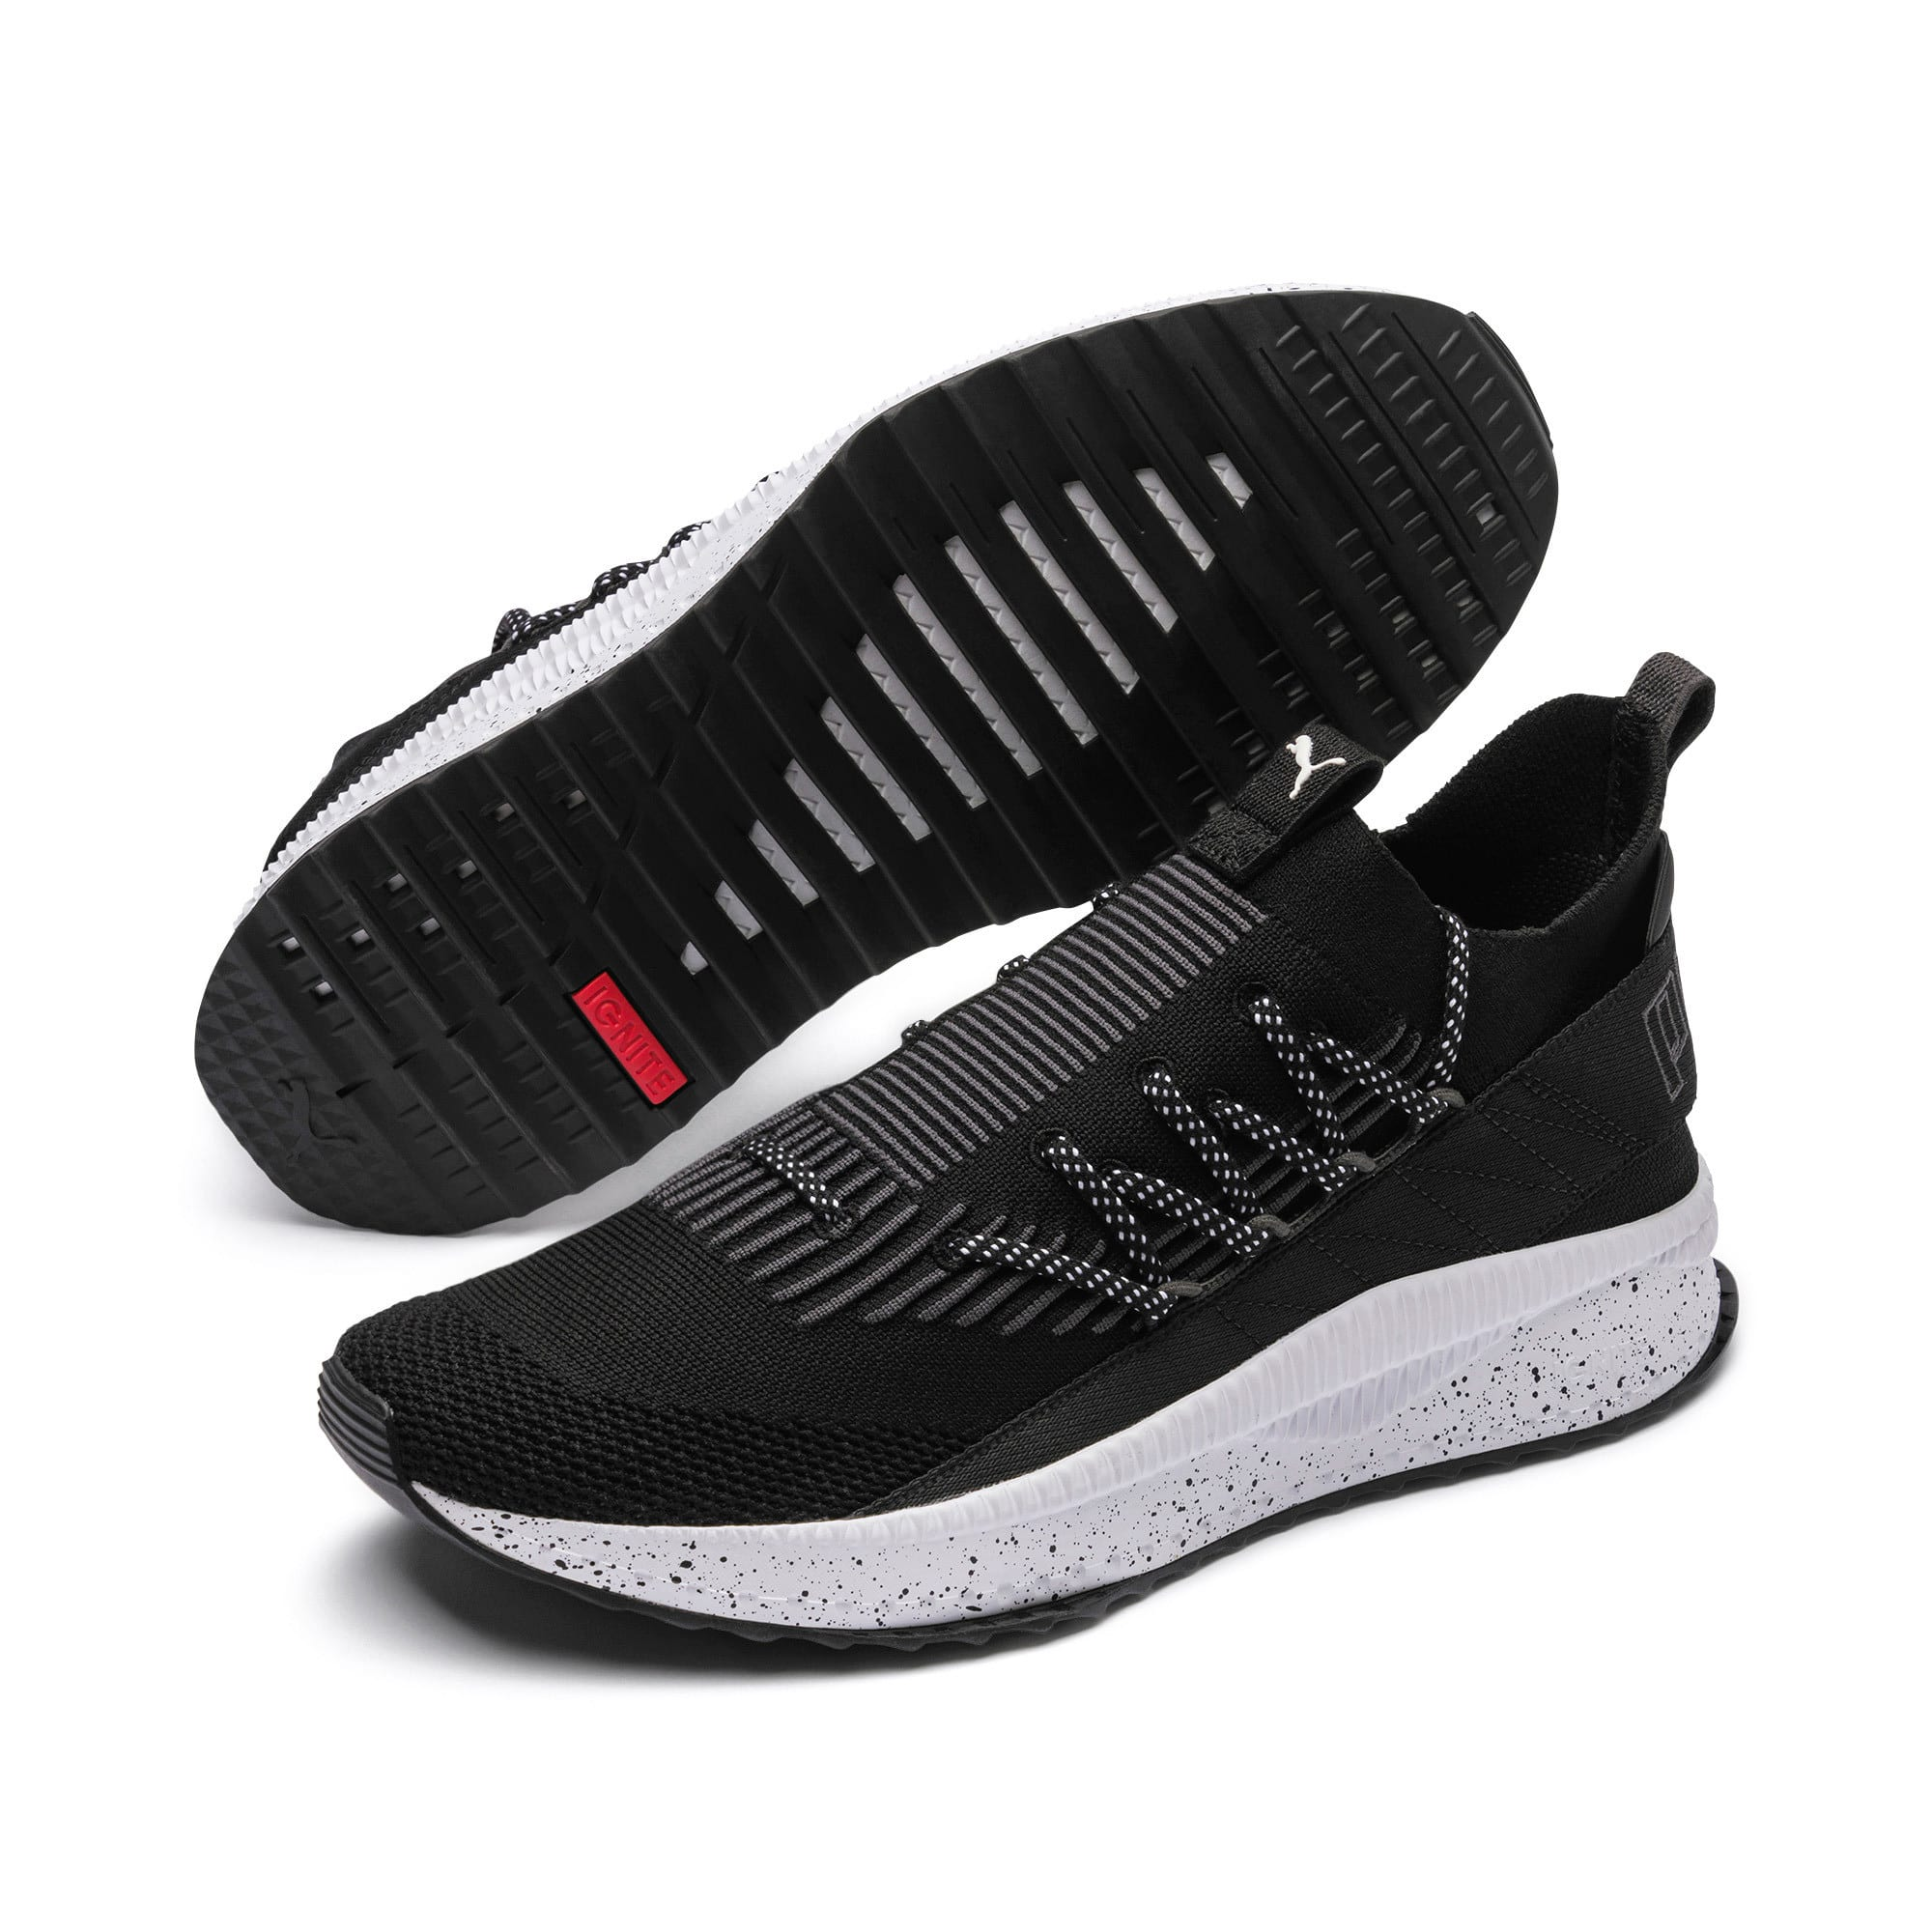 Thumbnail 2 of Tsugi Kai Jun Speckle evoKNIT Trainers, Puma Black-Asphalt, medium